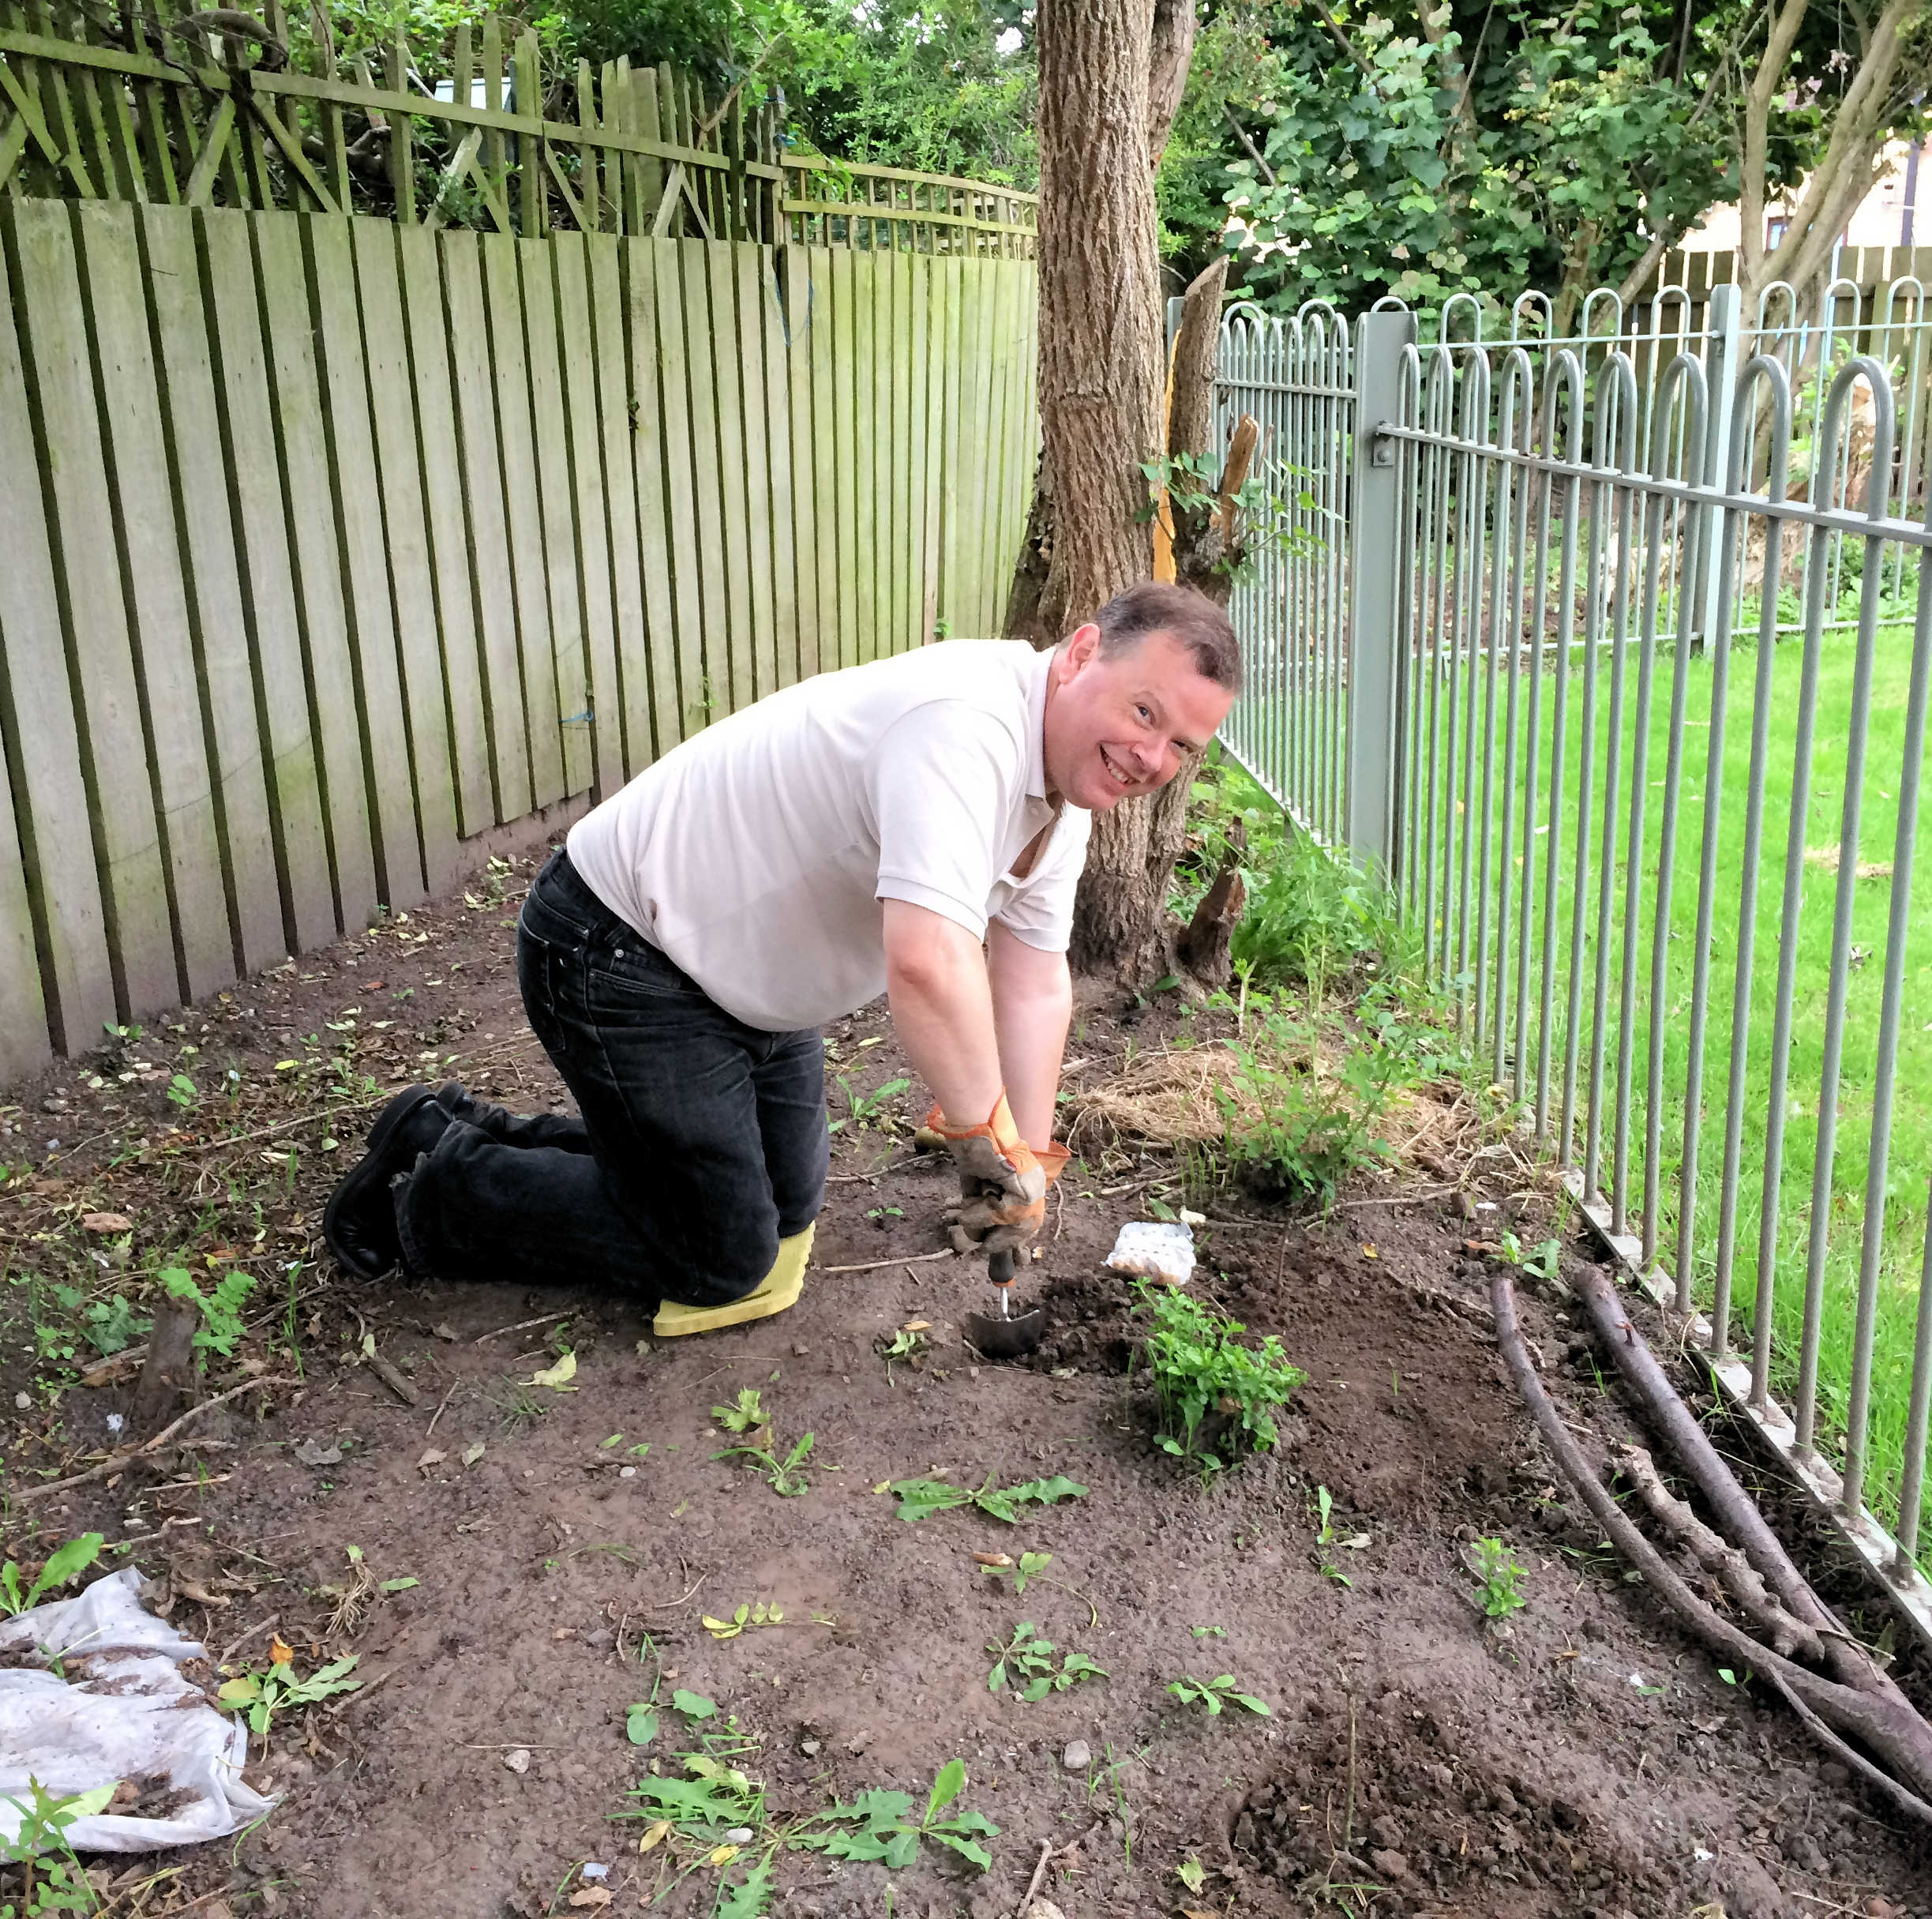 The week concluded with volunteers planting a Bluebell wood near the community centre on Bellhouse Way. Here Andrew Waller leads the work. Unfortunately weather conditions meant that an additional planting session will be needed later